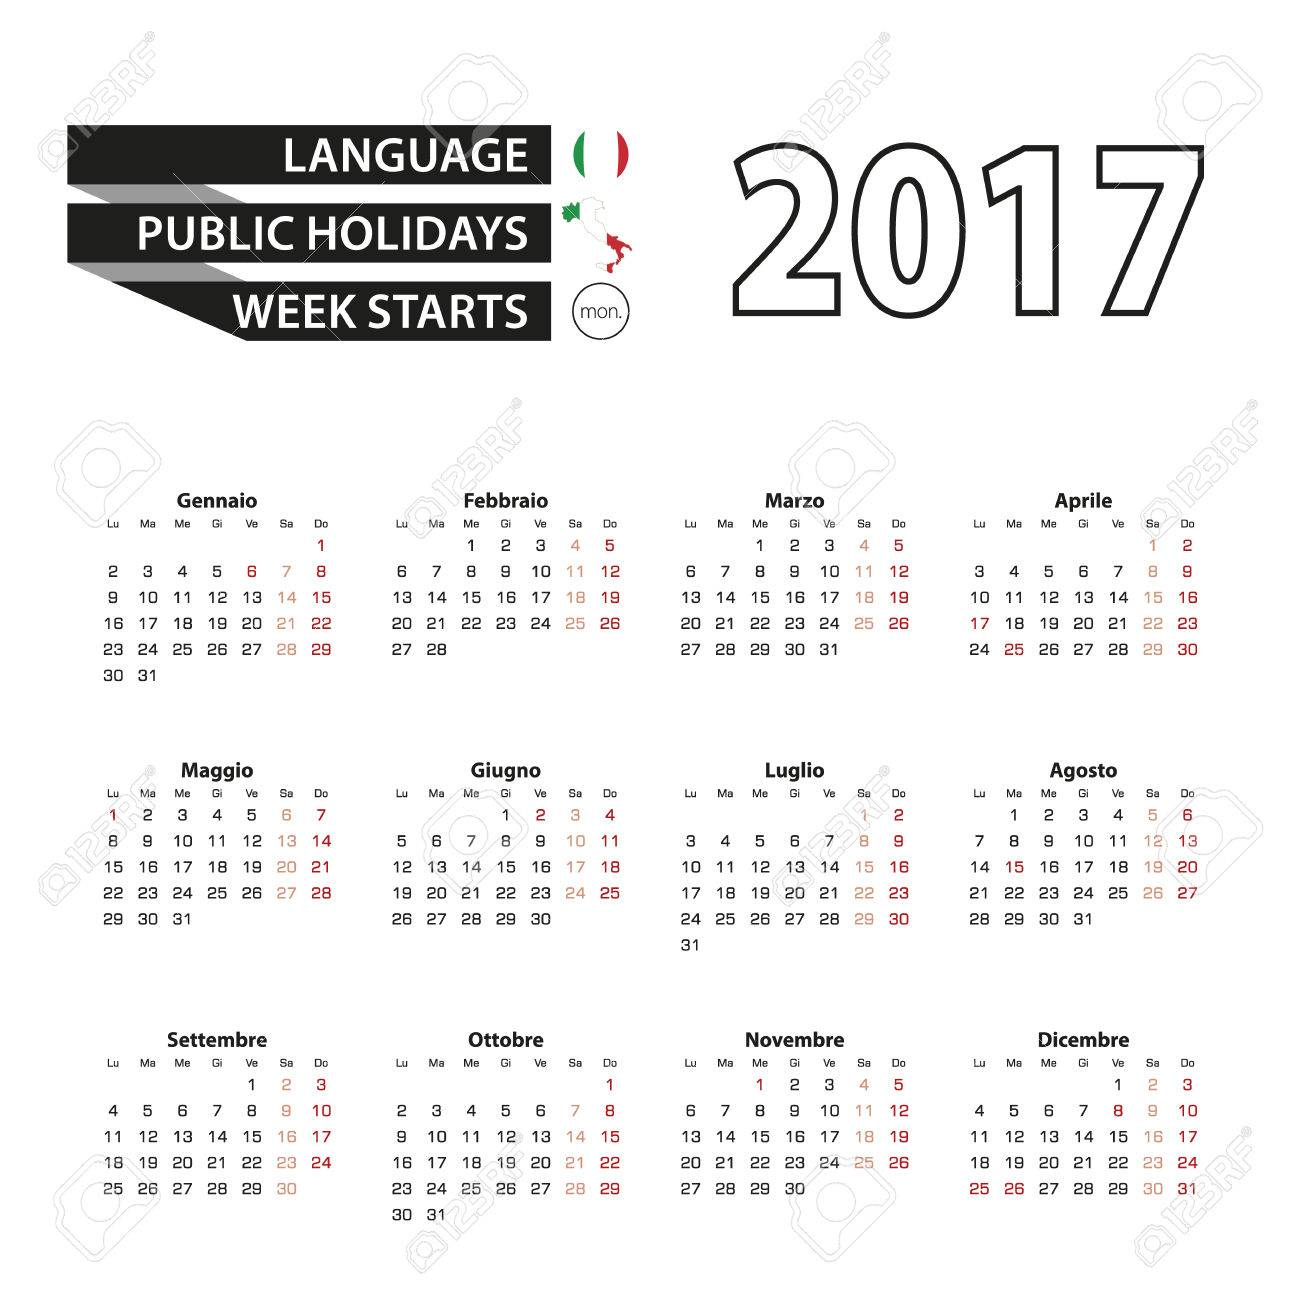 Calendar 2017 on Italian language. With Public Holidays for Italy in year 2017. Week starts from Monday. Simple Calendar. Vector Illustration. - 66694396